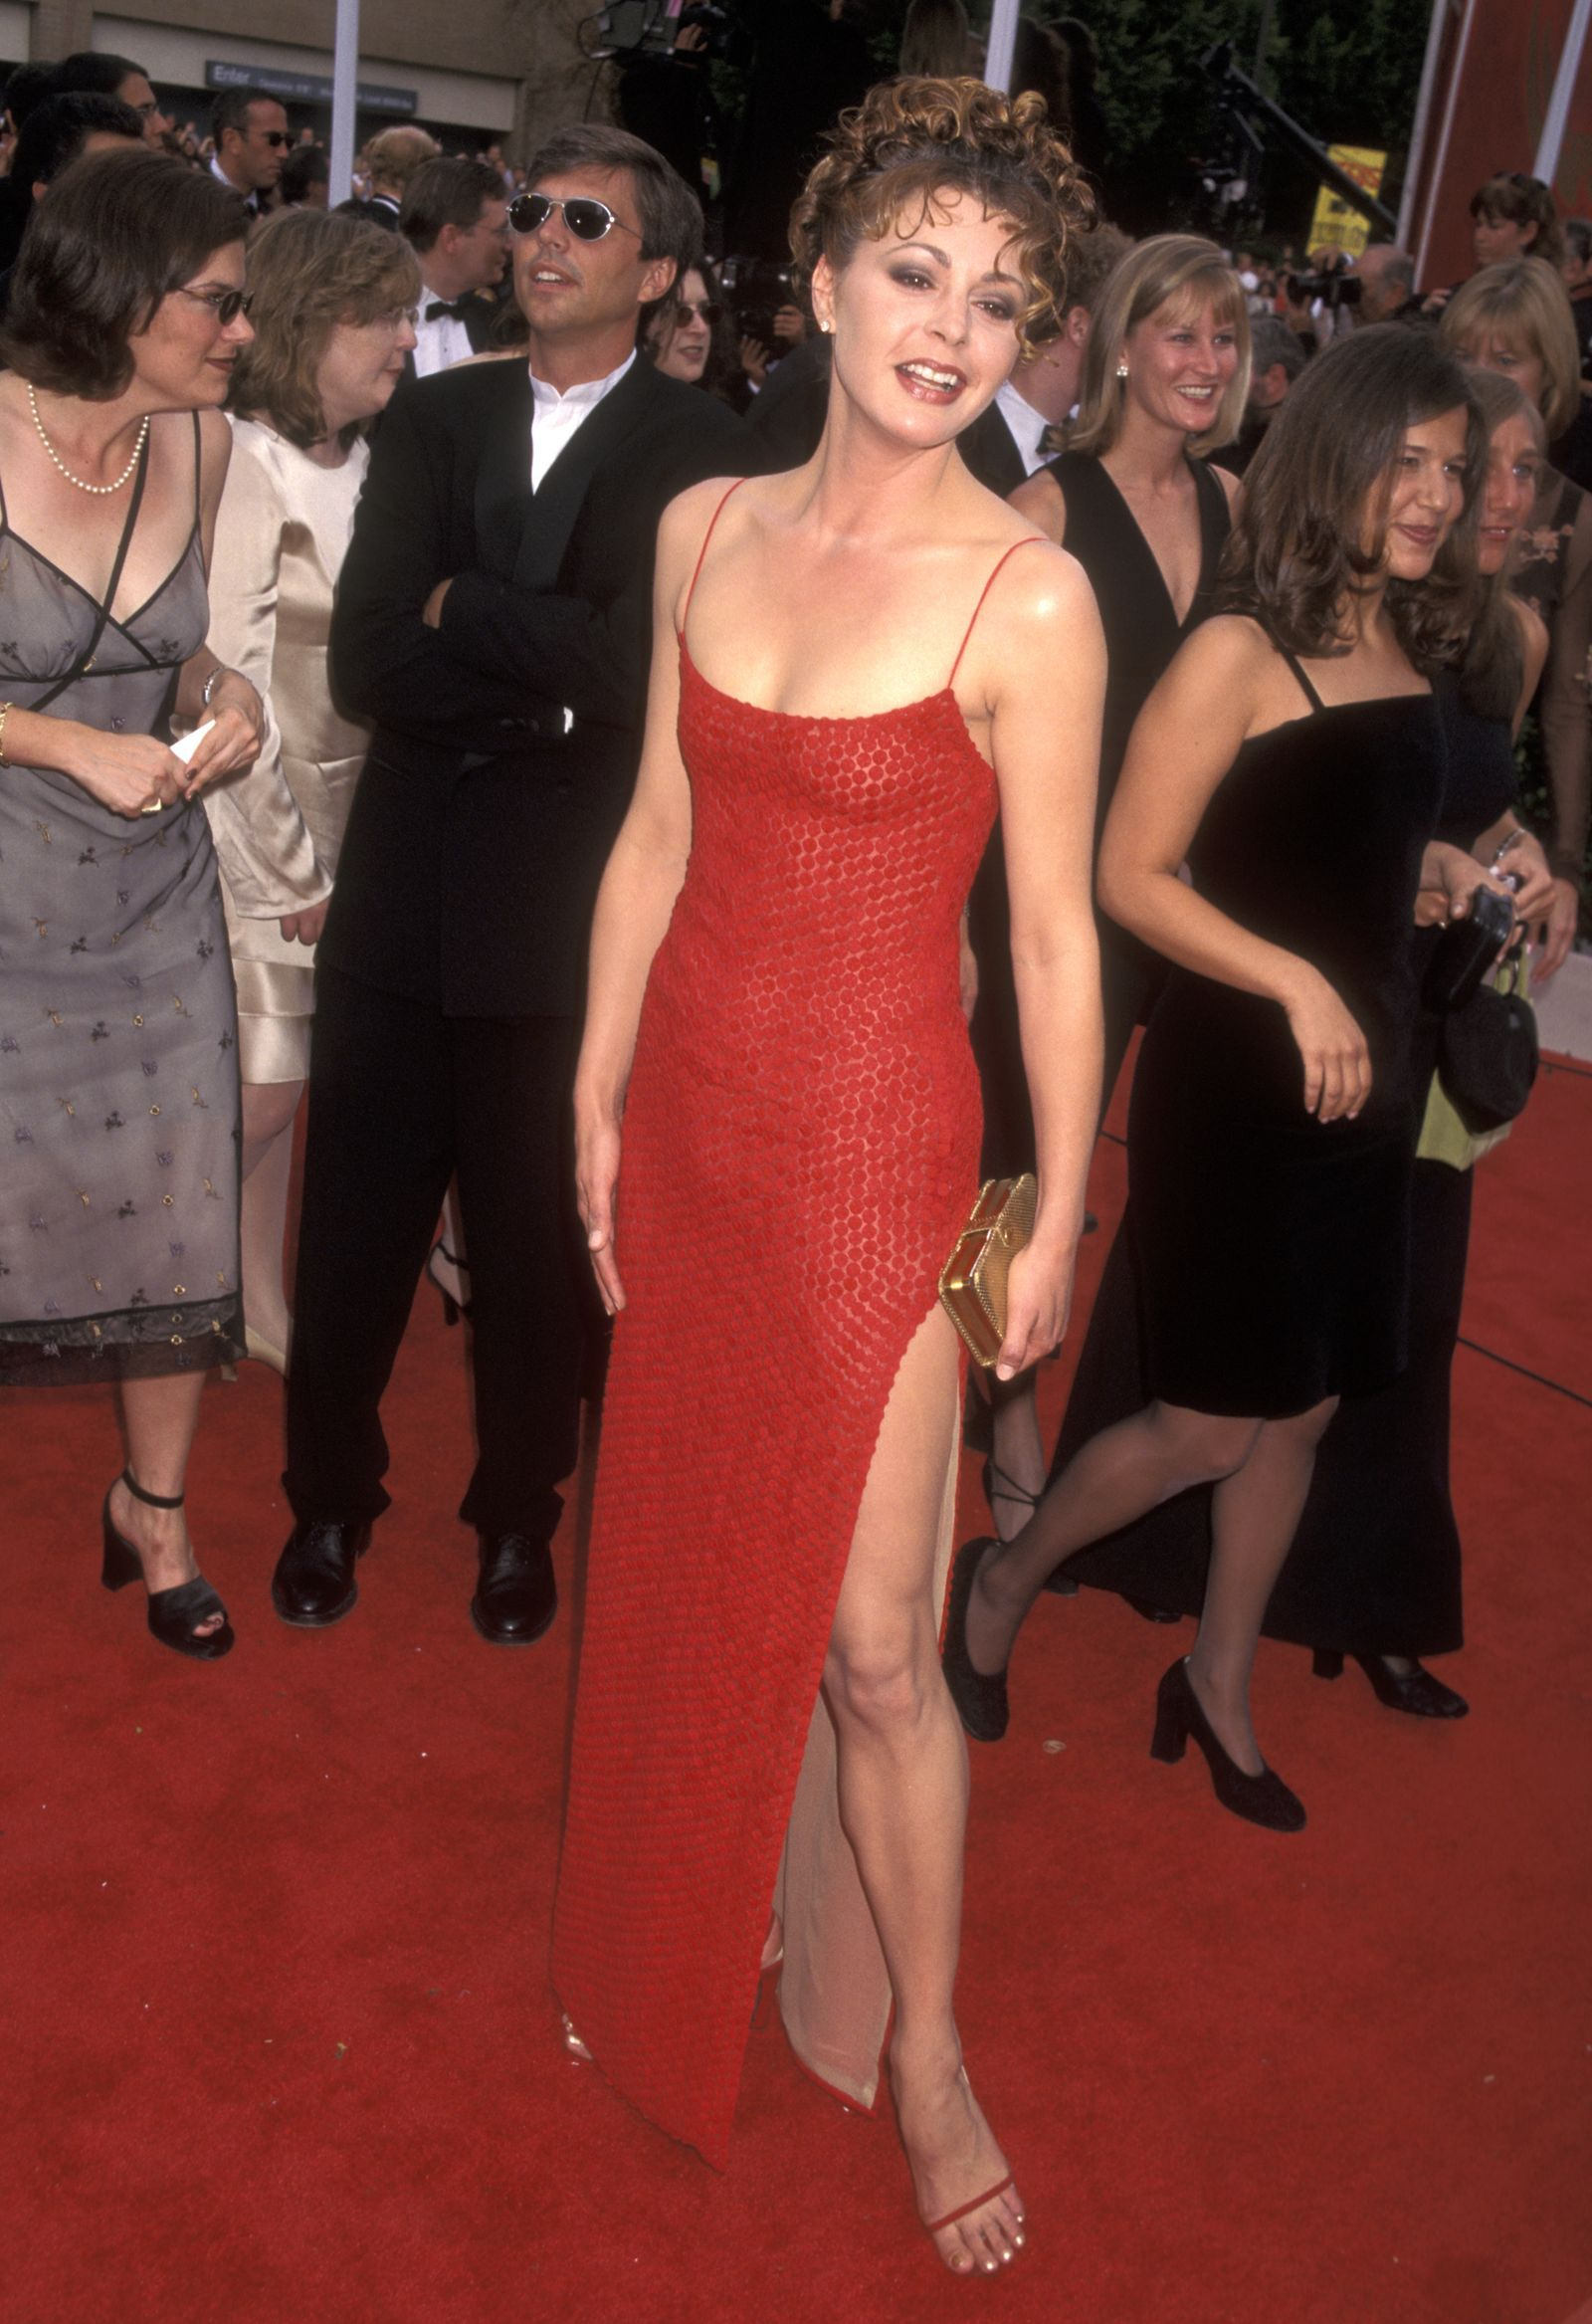 The Best Emmys Red Carpet Dresses Of All Time 90s Prom Dresses Red Carpet Dresses 90s Red Carpet Dresses [ 2335 x 1600 Pixel ]